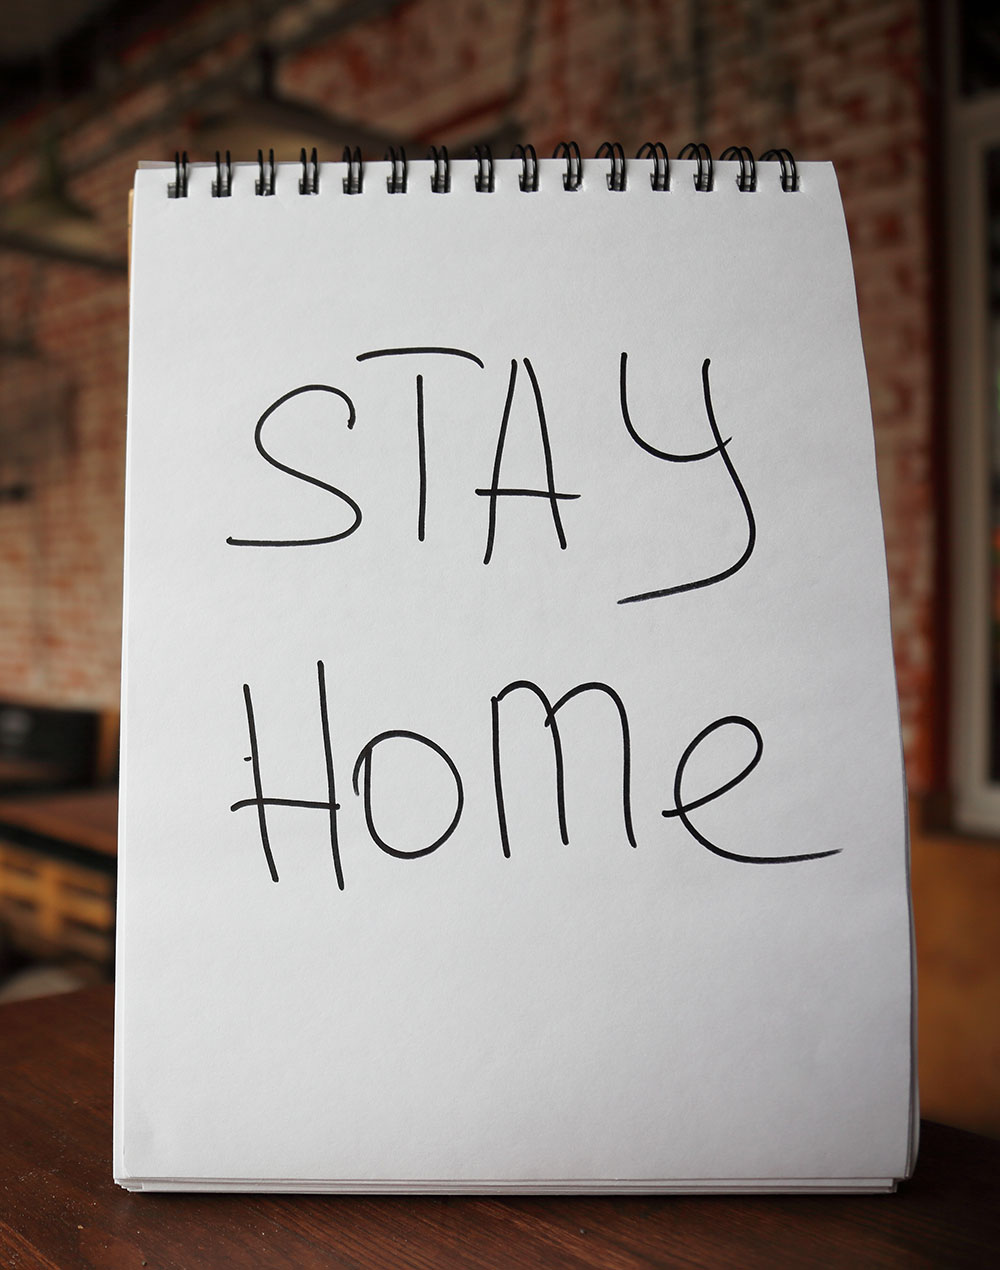 Stay home message in a shop window